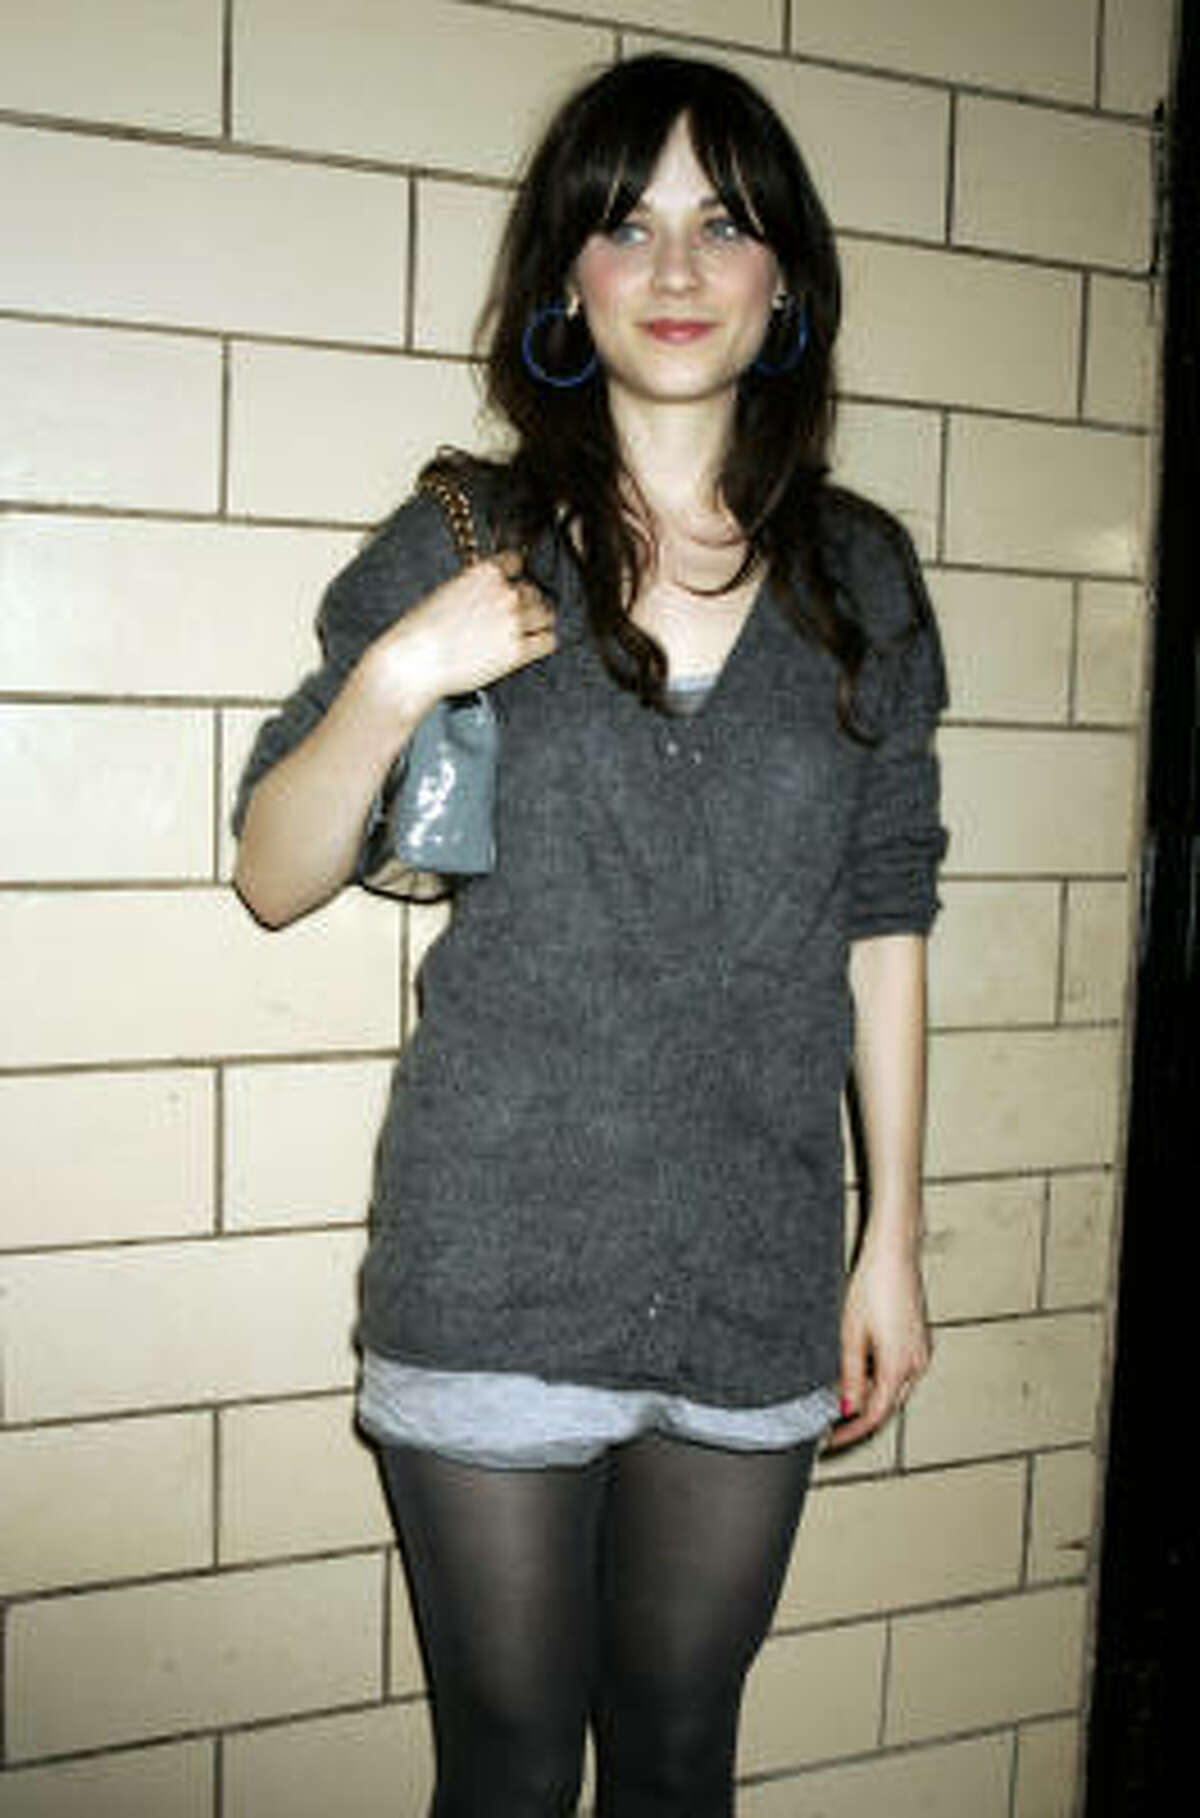 Actress Zooey Deschanel is known for her classic style. Although some find it an odd statement, it has become popular to wear shorts with leggings in cooler months.